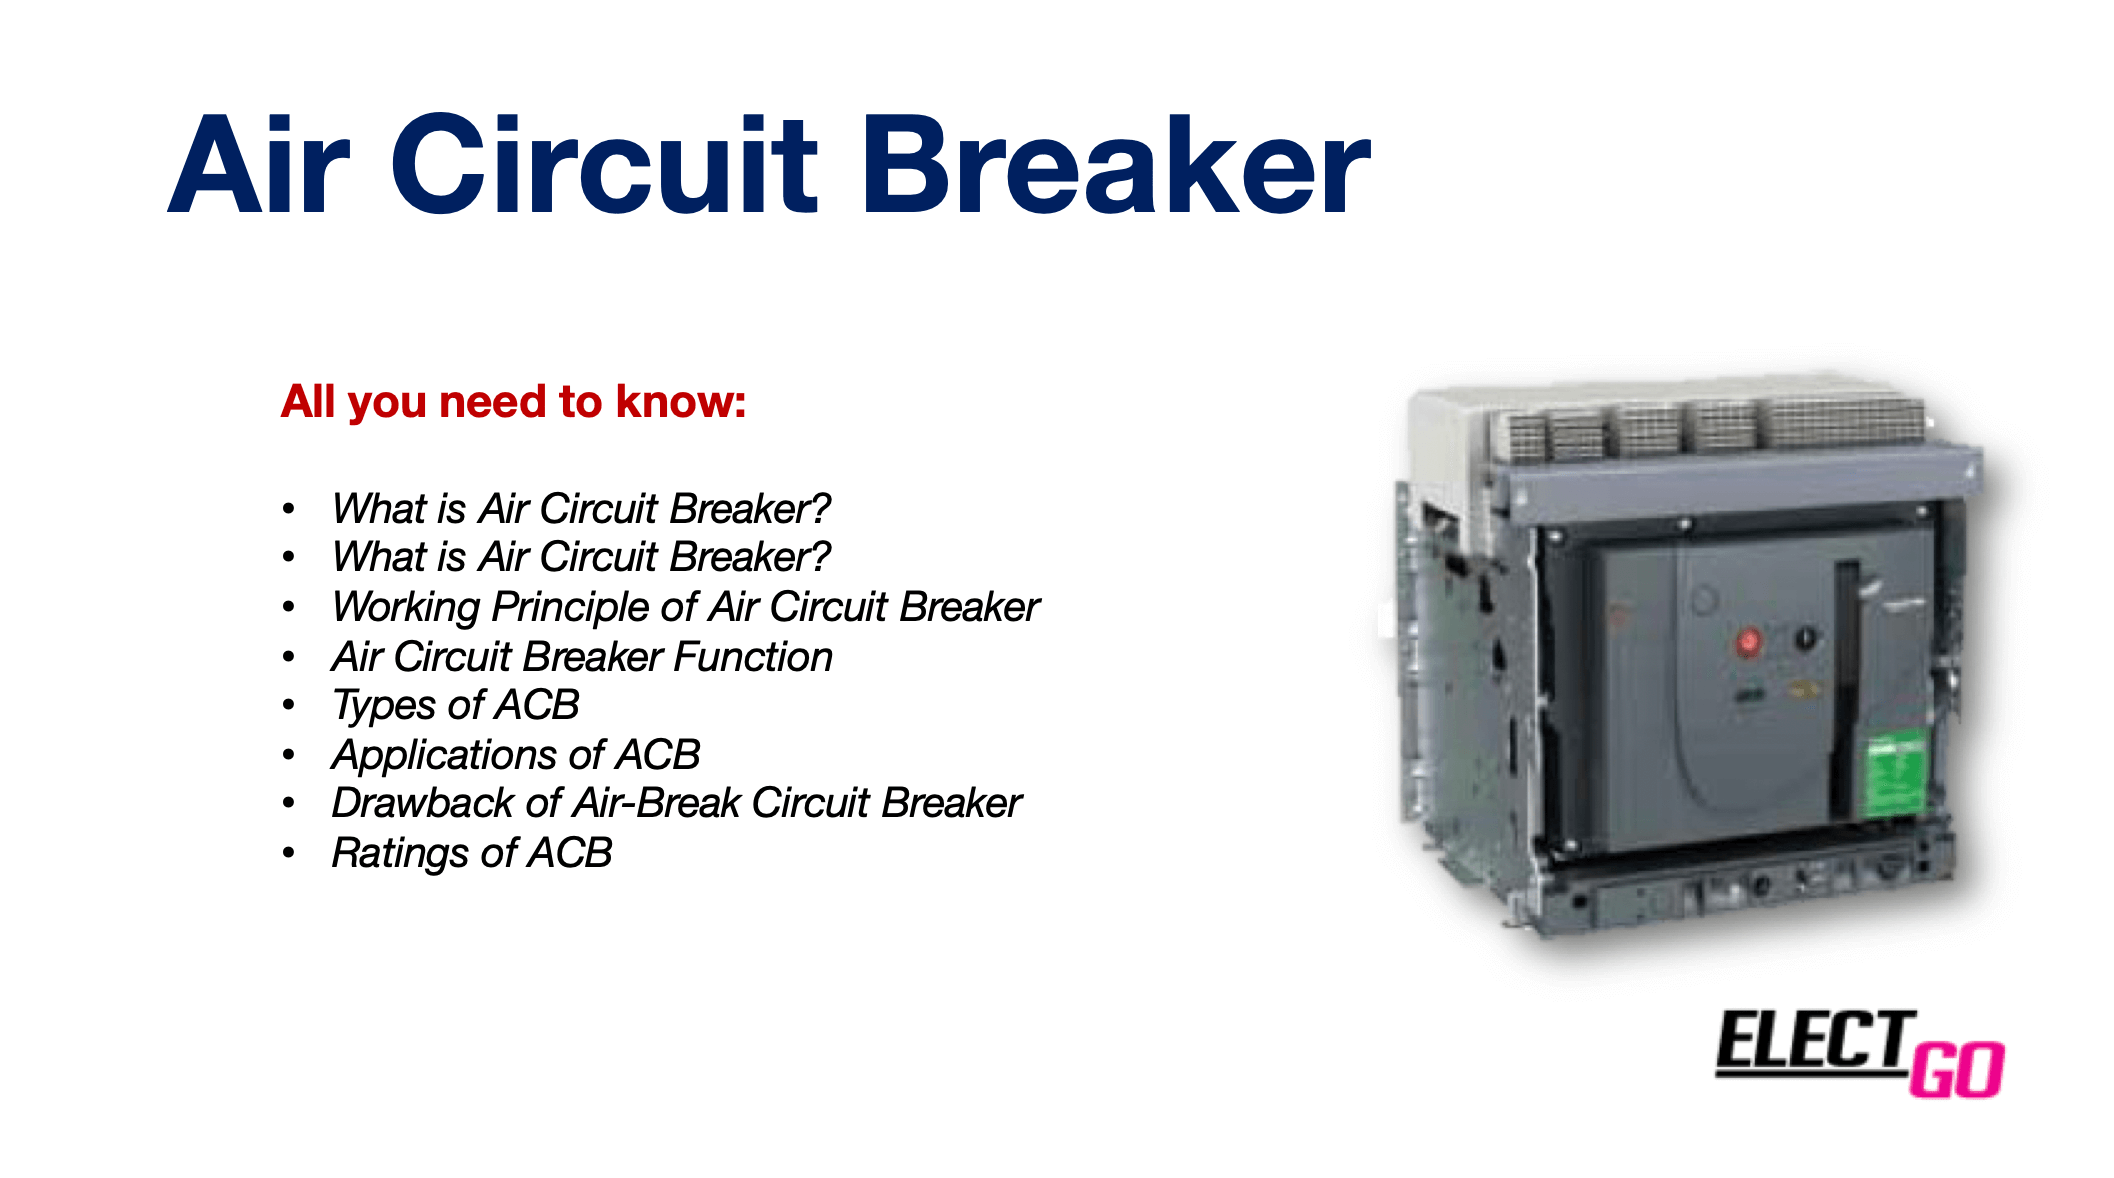 ACB 】| All you need to know about Air Circuit Breaker - [Updated 2020]ElectGo